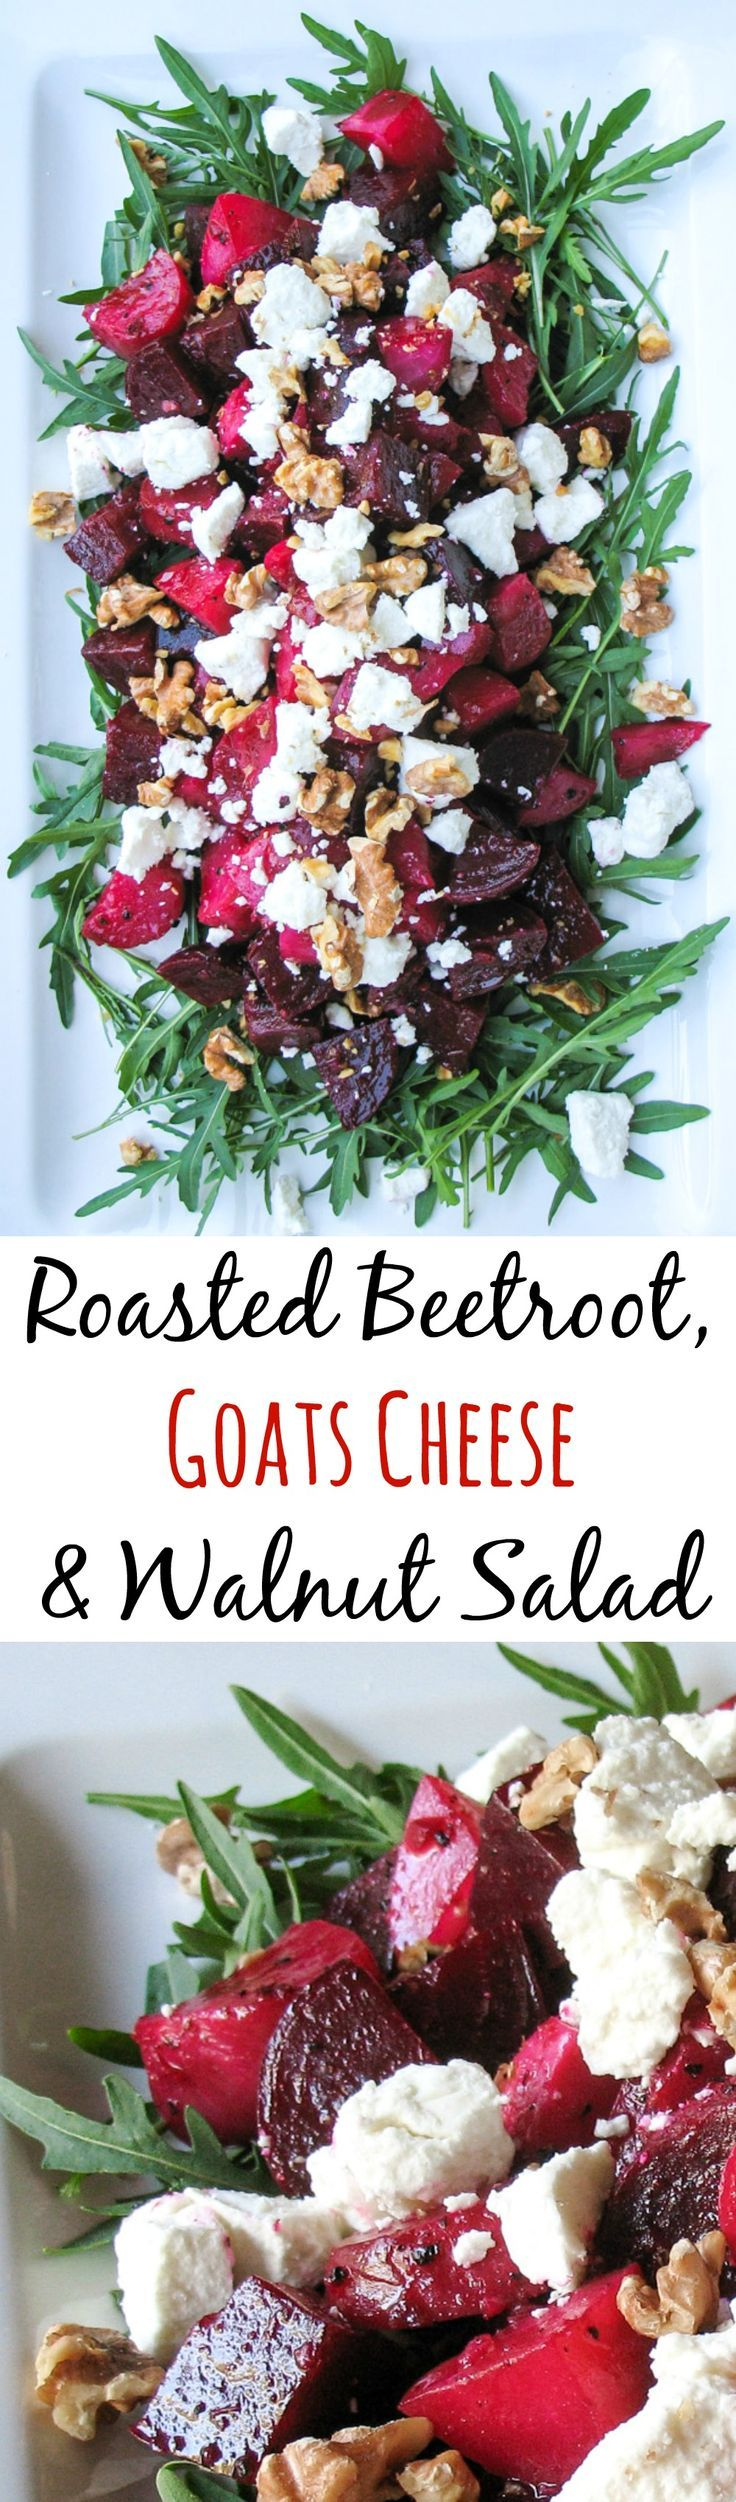 Roasted Beetroot, Goats Cheese & Walnut Salad. Beets -yummy! A Great main course salad.